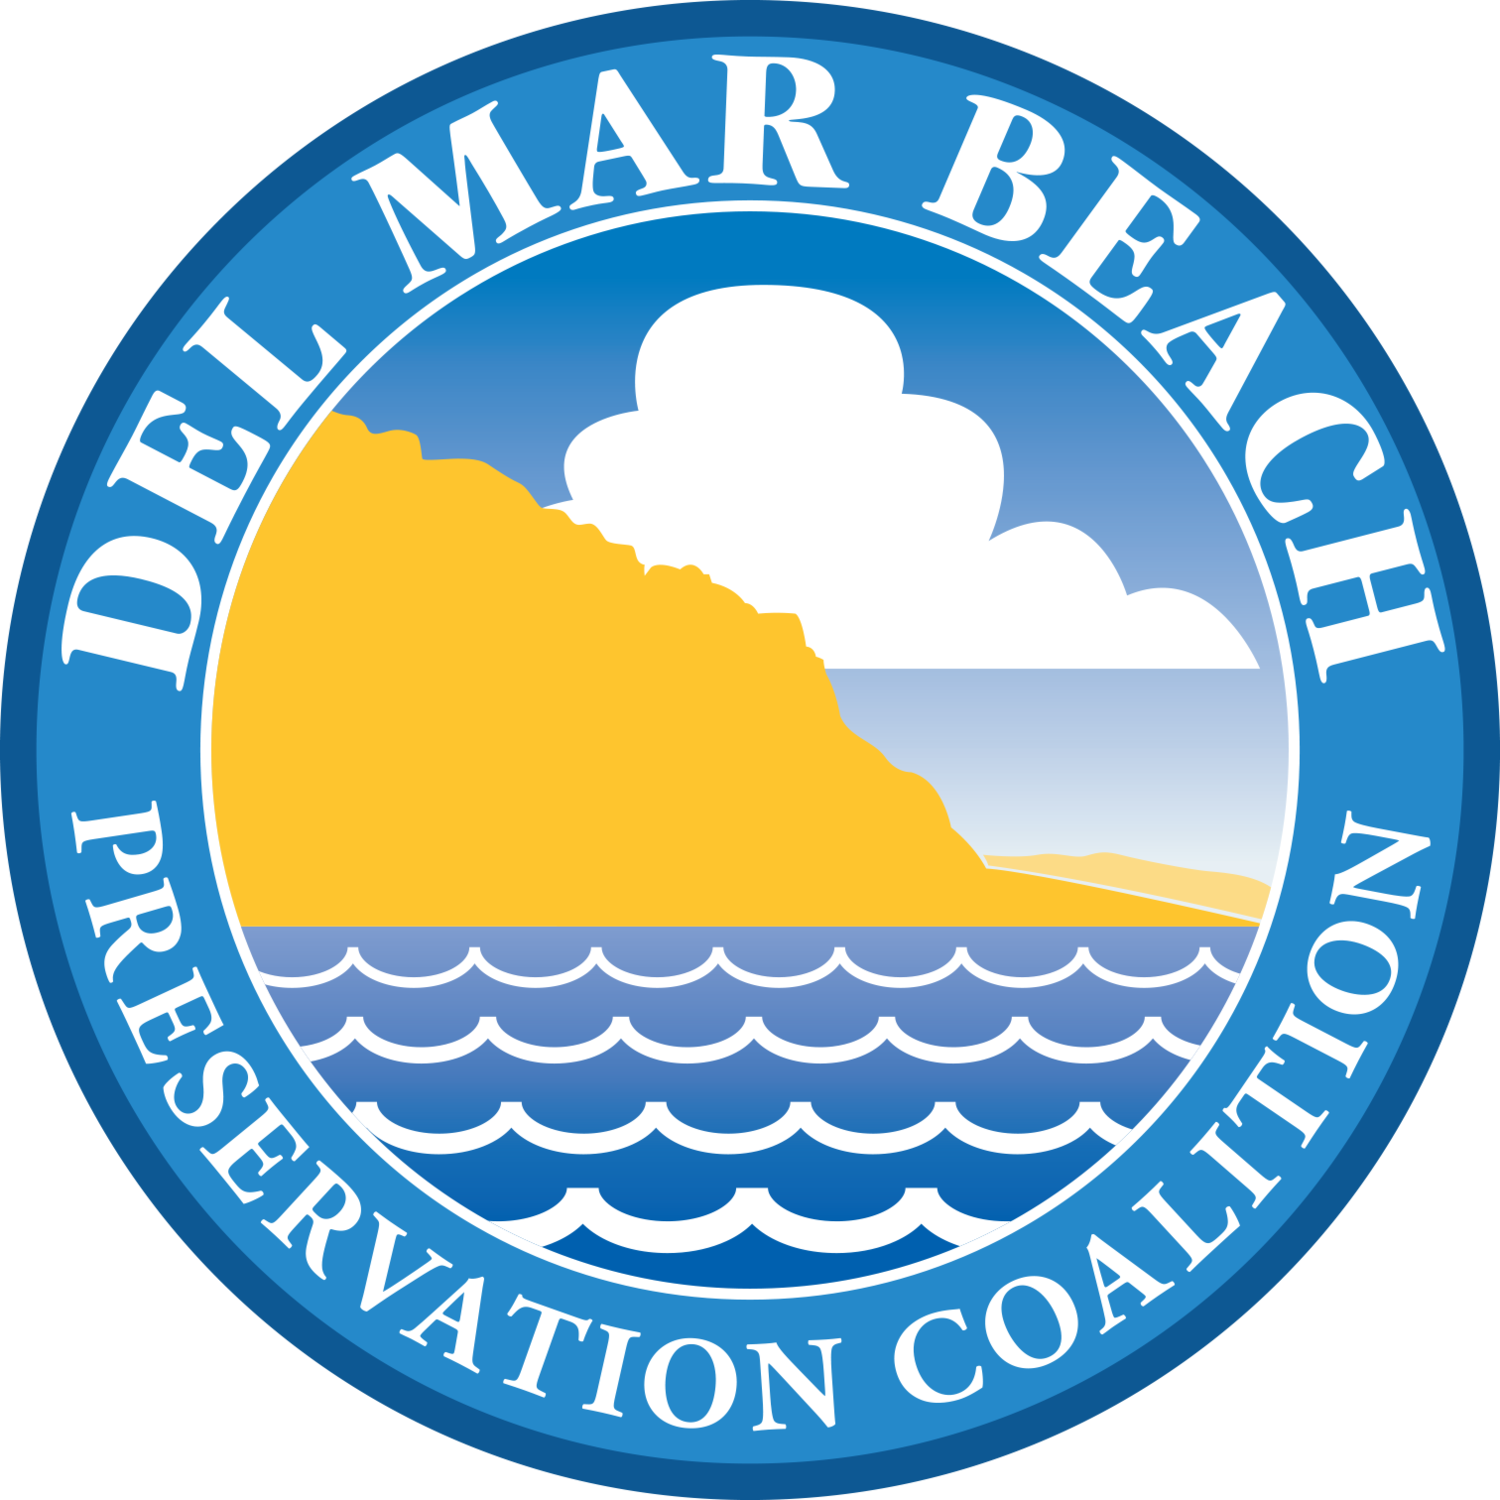 Del Mar Beach Preservation Coalition